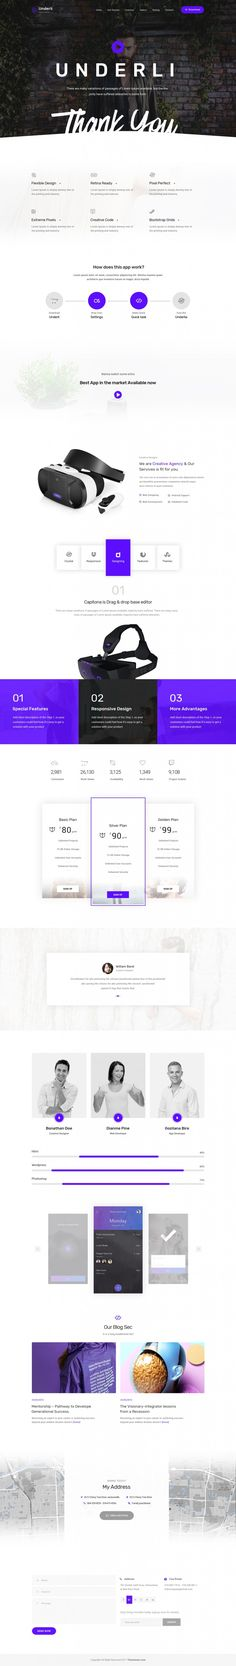 App Landing Page & Product Showcase